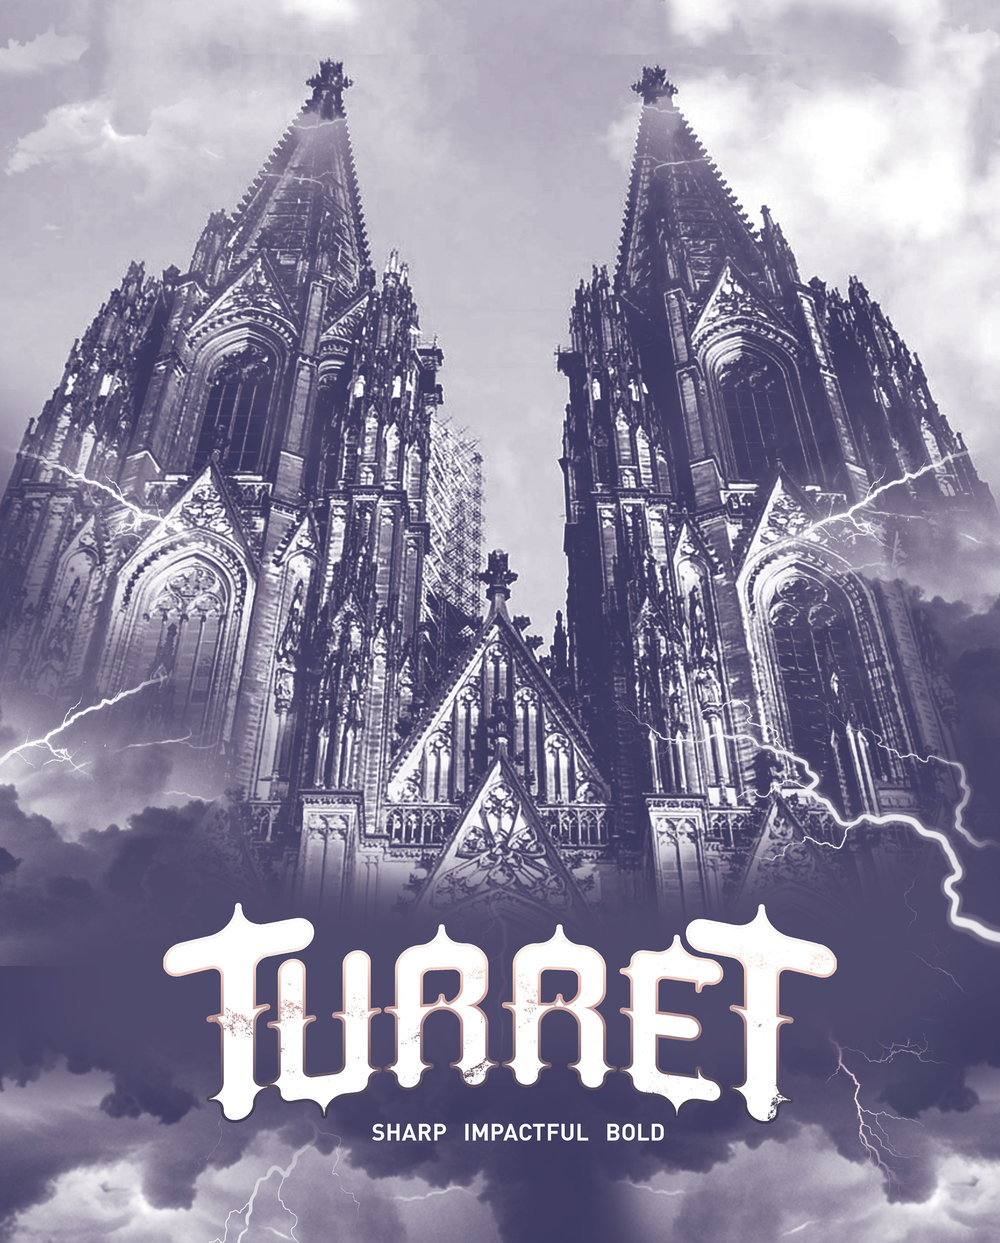 Turret - Typeface Design2015Turret is a sharp, barbed, bold typeface inspired by Medieval Cathedral architecture. The forms of this transitional typeface is an attempt of evoking the overwhelming experience of the antique churches. The organic edges are reminiscent to the rounded arches. The protruding spikes are to a rose window in a nave or siding of the structure. Turret is a display typeface with legibility best at 15 pts (point-size) or more.Turret was also featured in